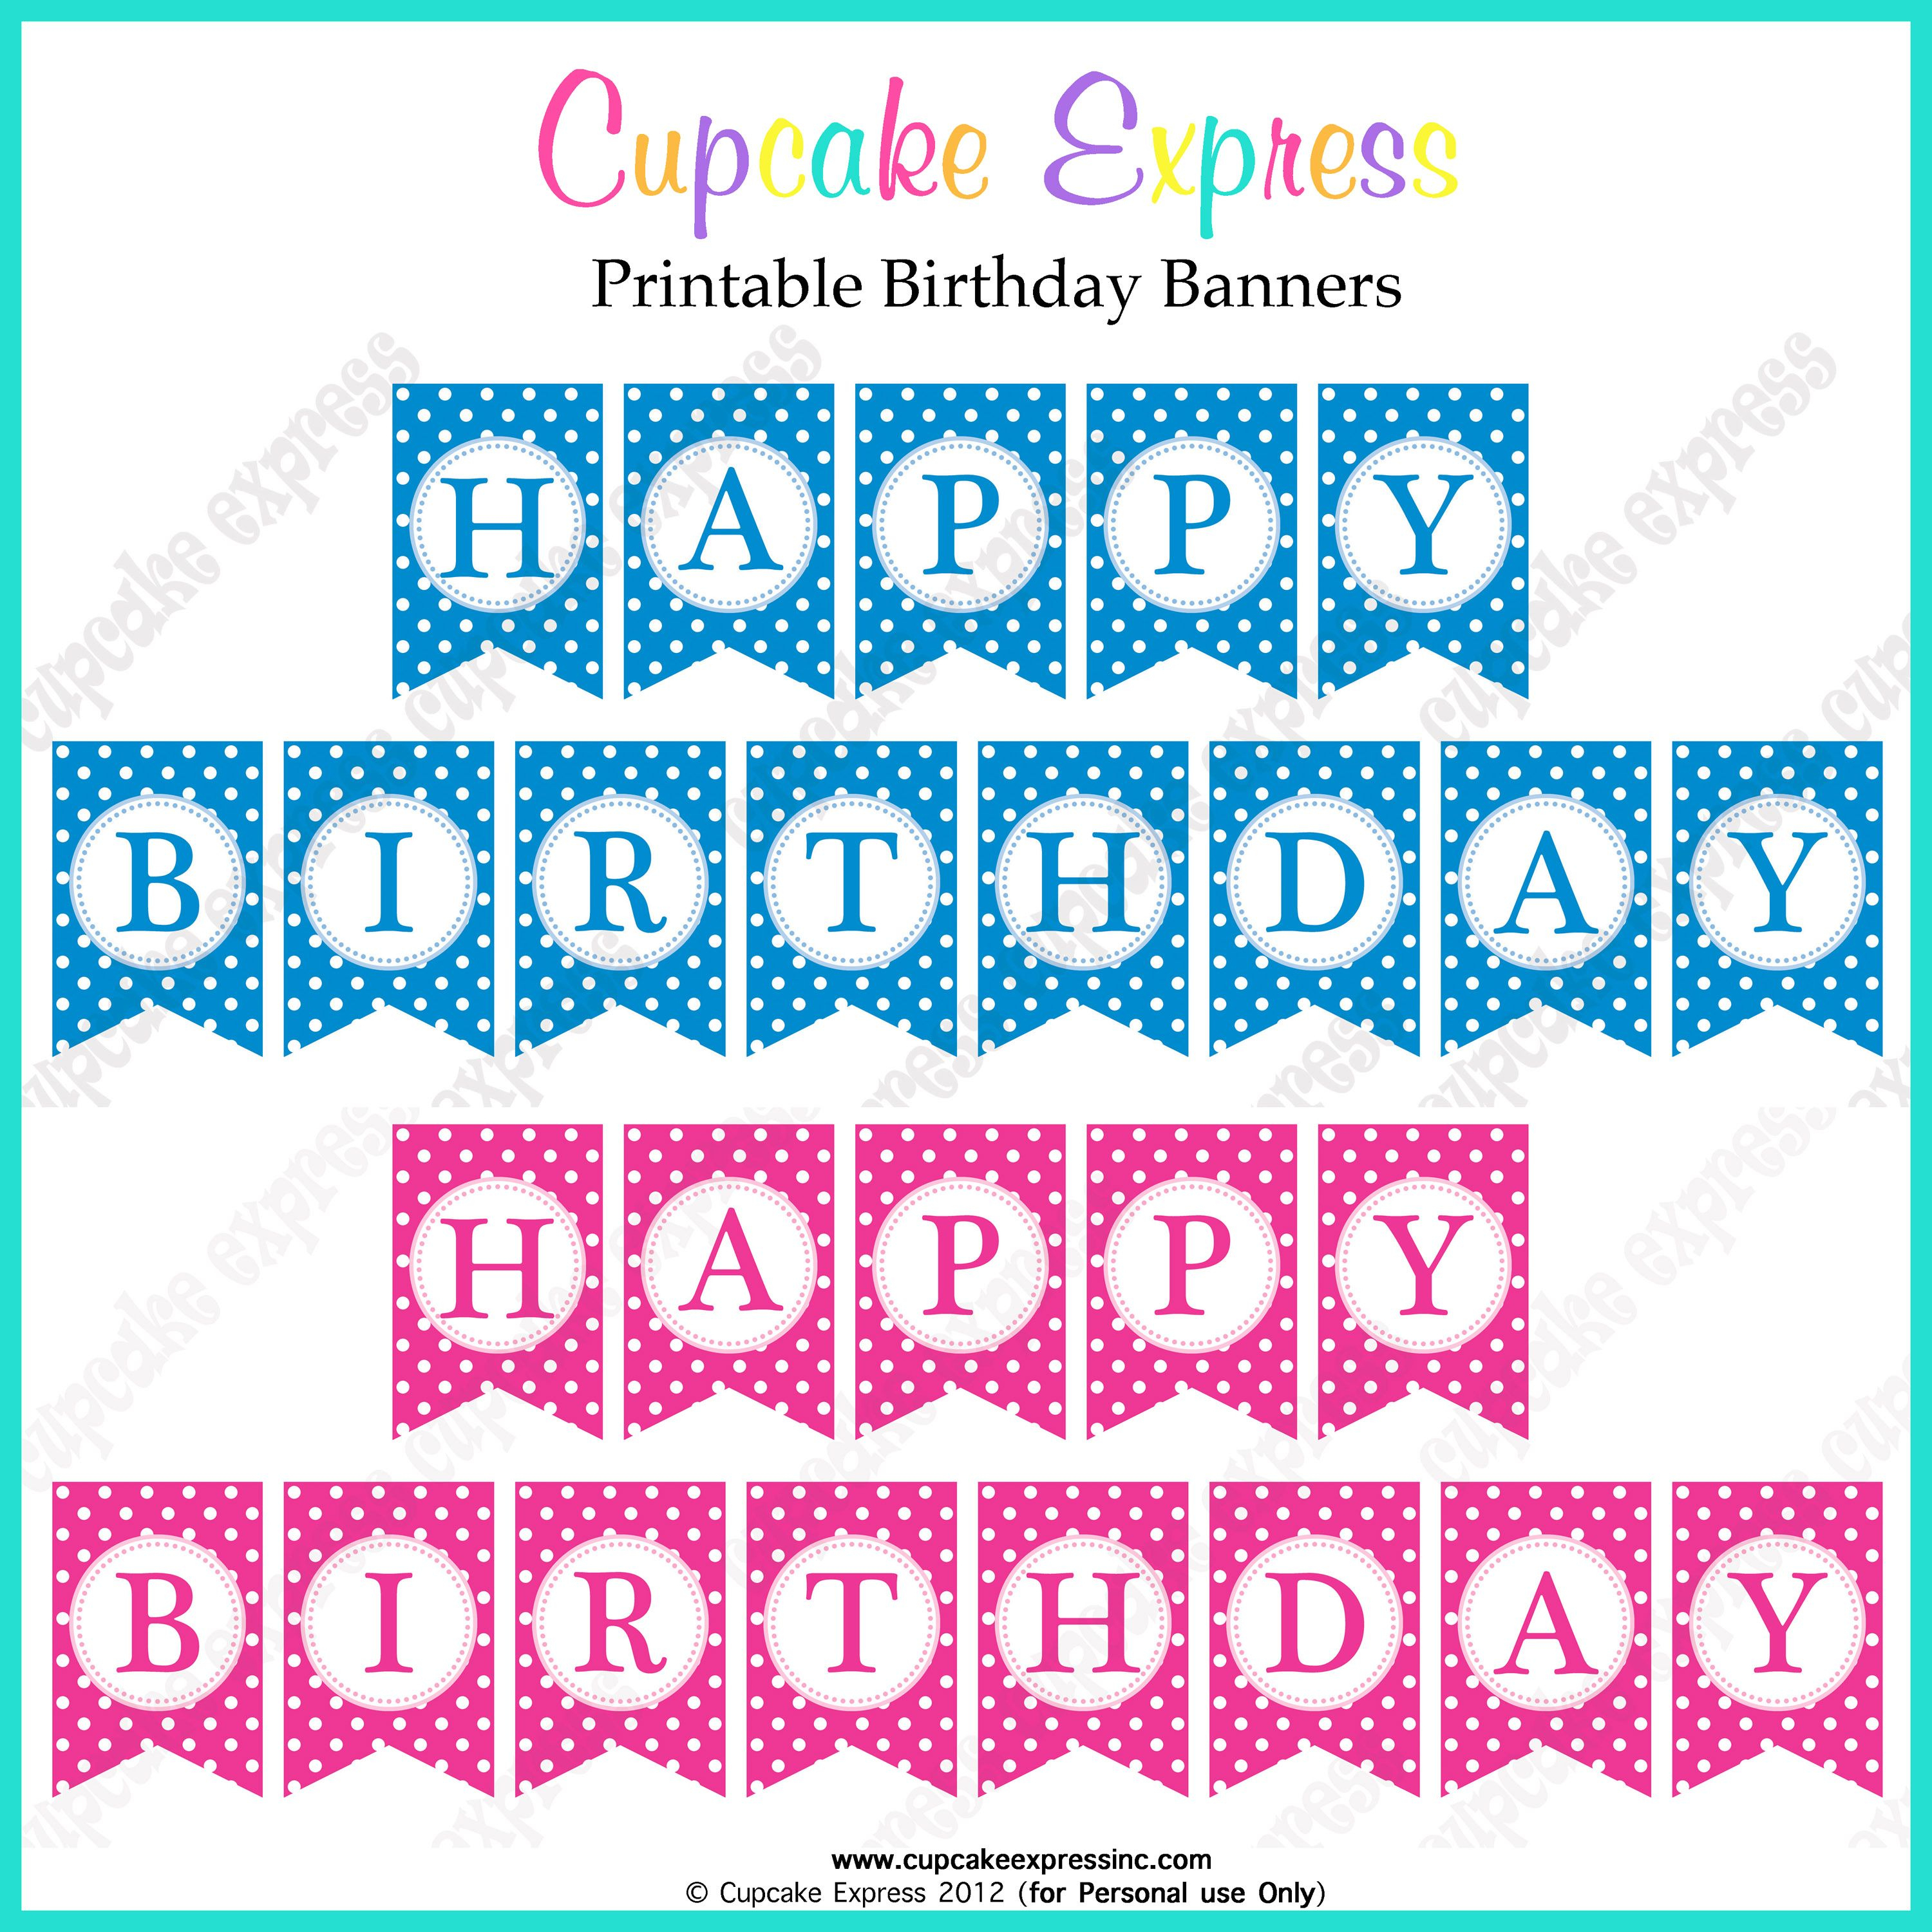 99+ 4 370 Customizable Design Templates For Happy Birthday - Free Printable Banner Maker